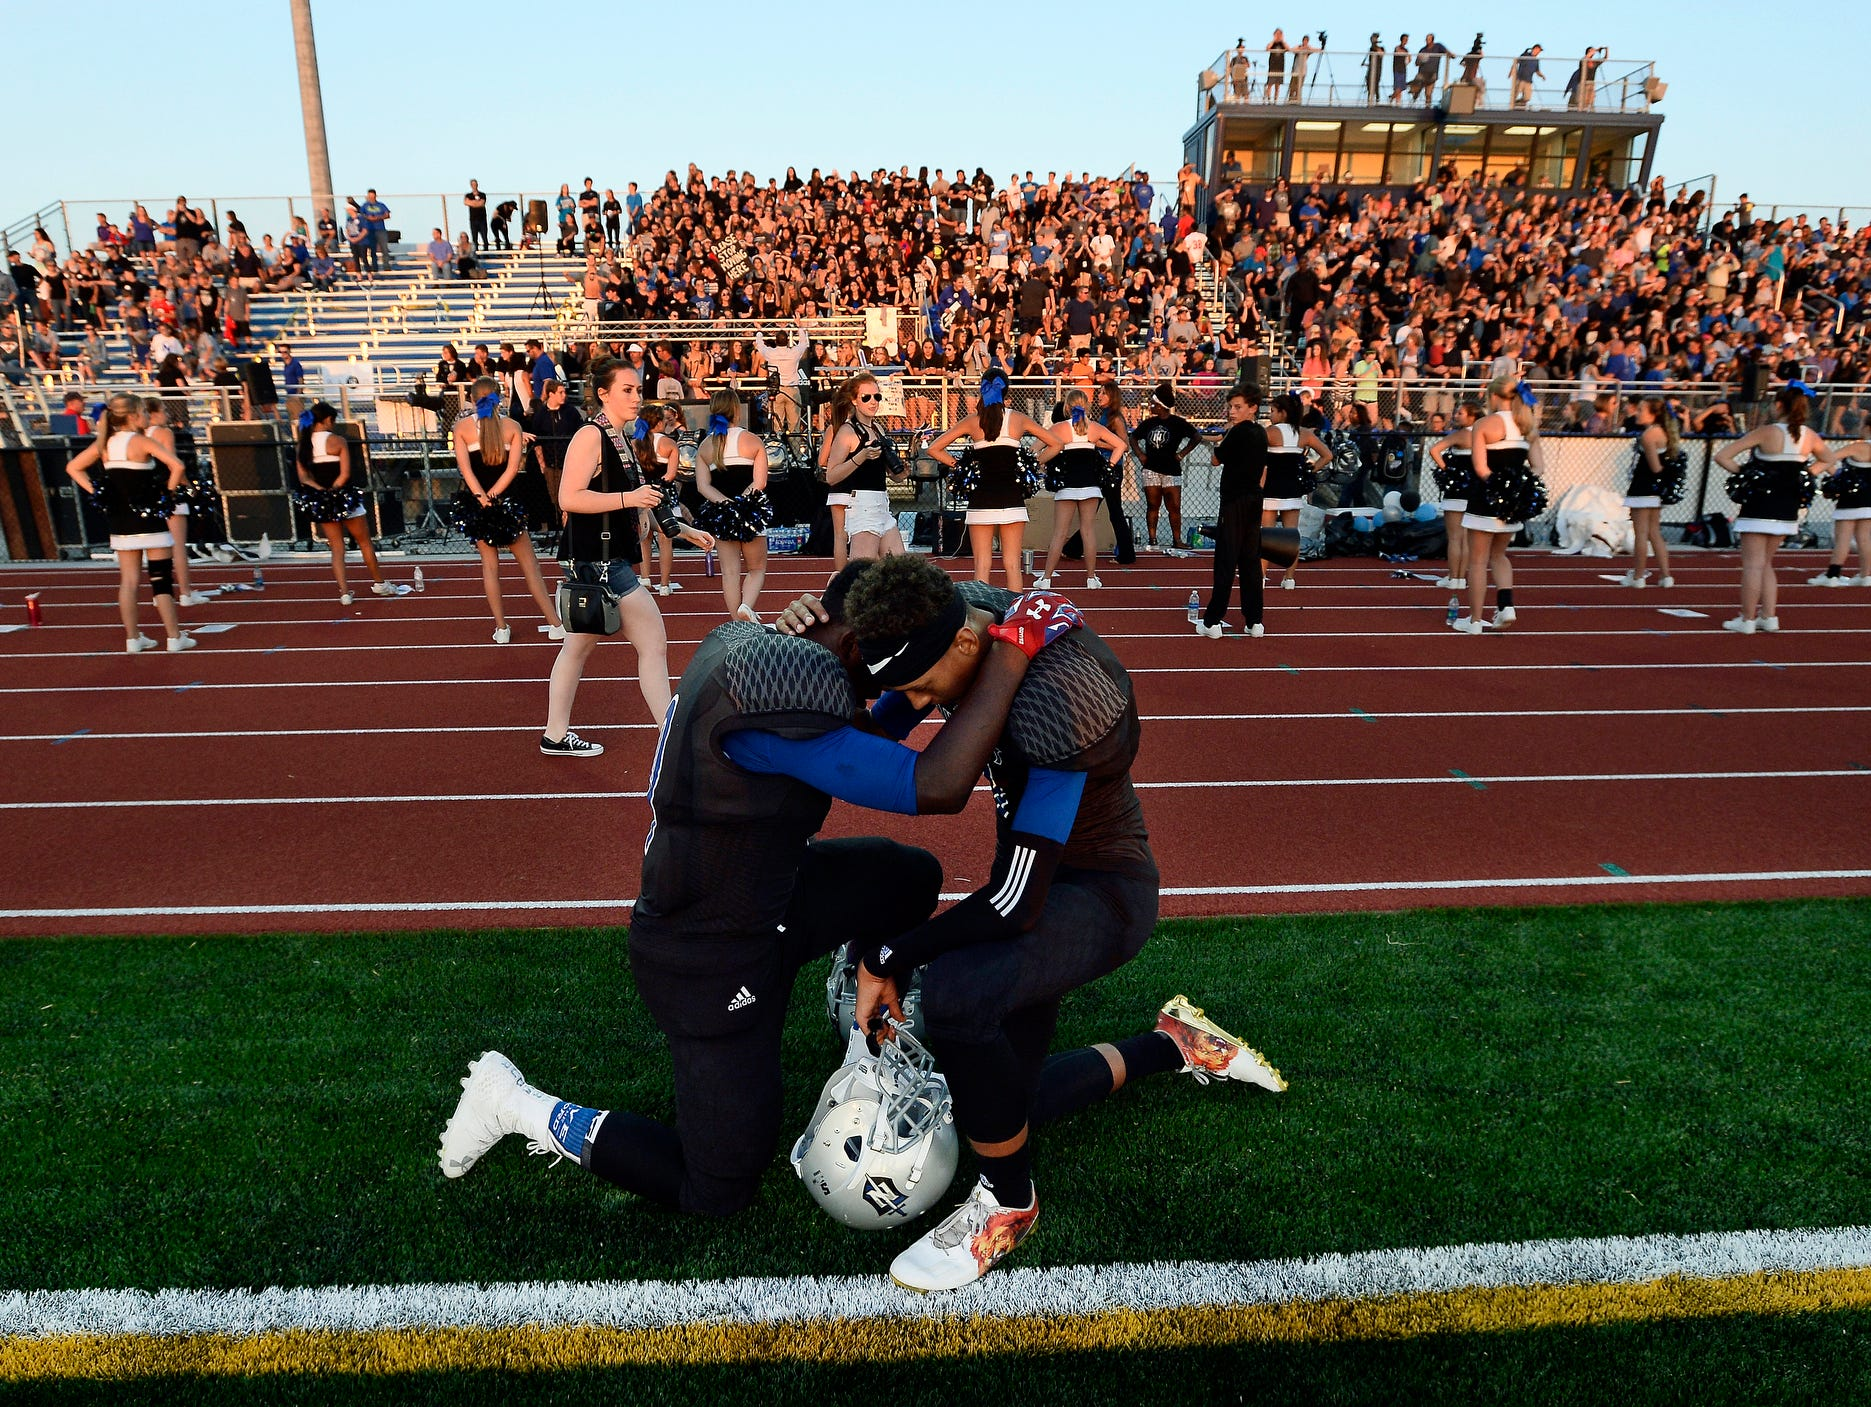 Nolensville running back Jy' Don Greene, left, and quarterback Brandon Wharton, right, pray before the start of the team's homecoming game against South Gibson High School on Friday, Sept. 2, 2016, in Nolensville, Tenn.